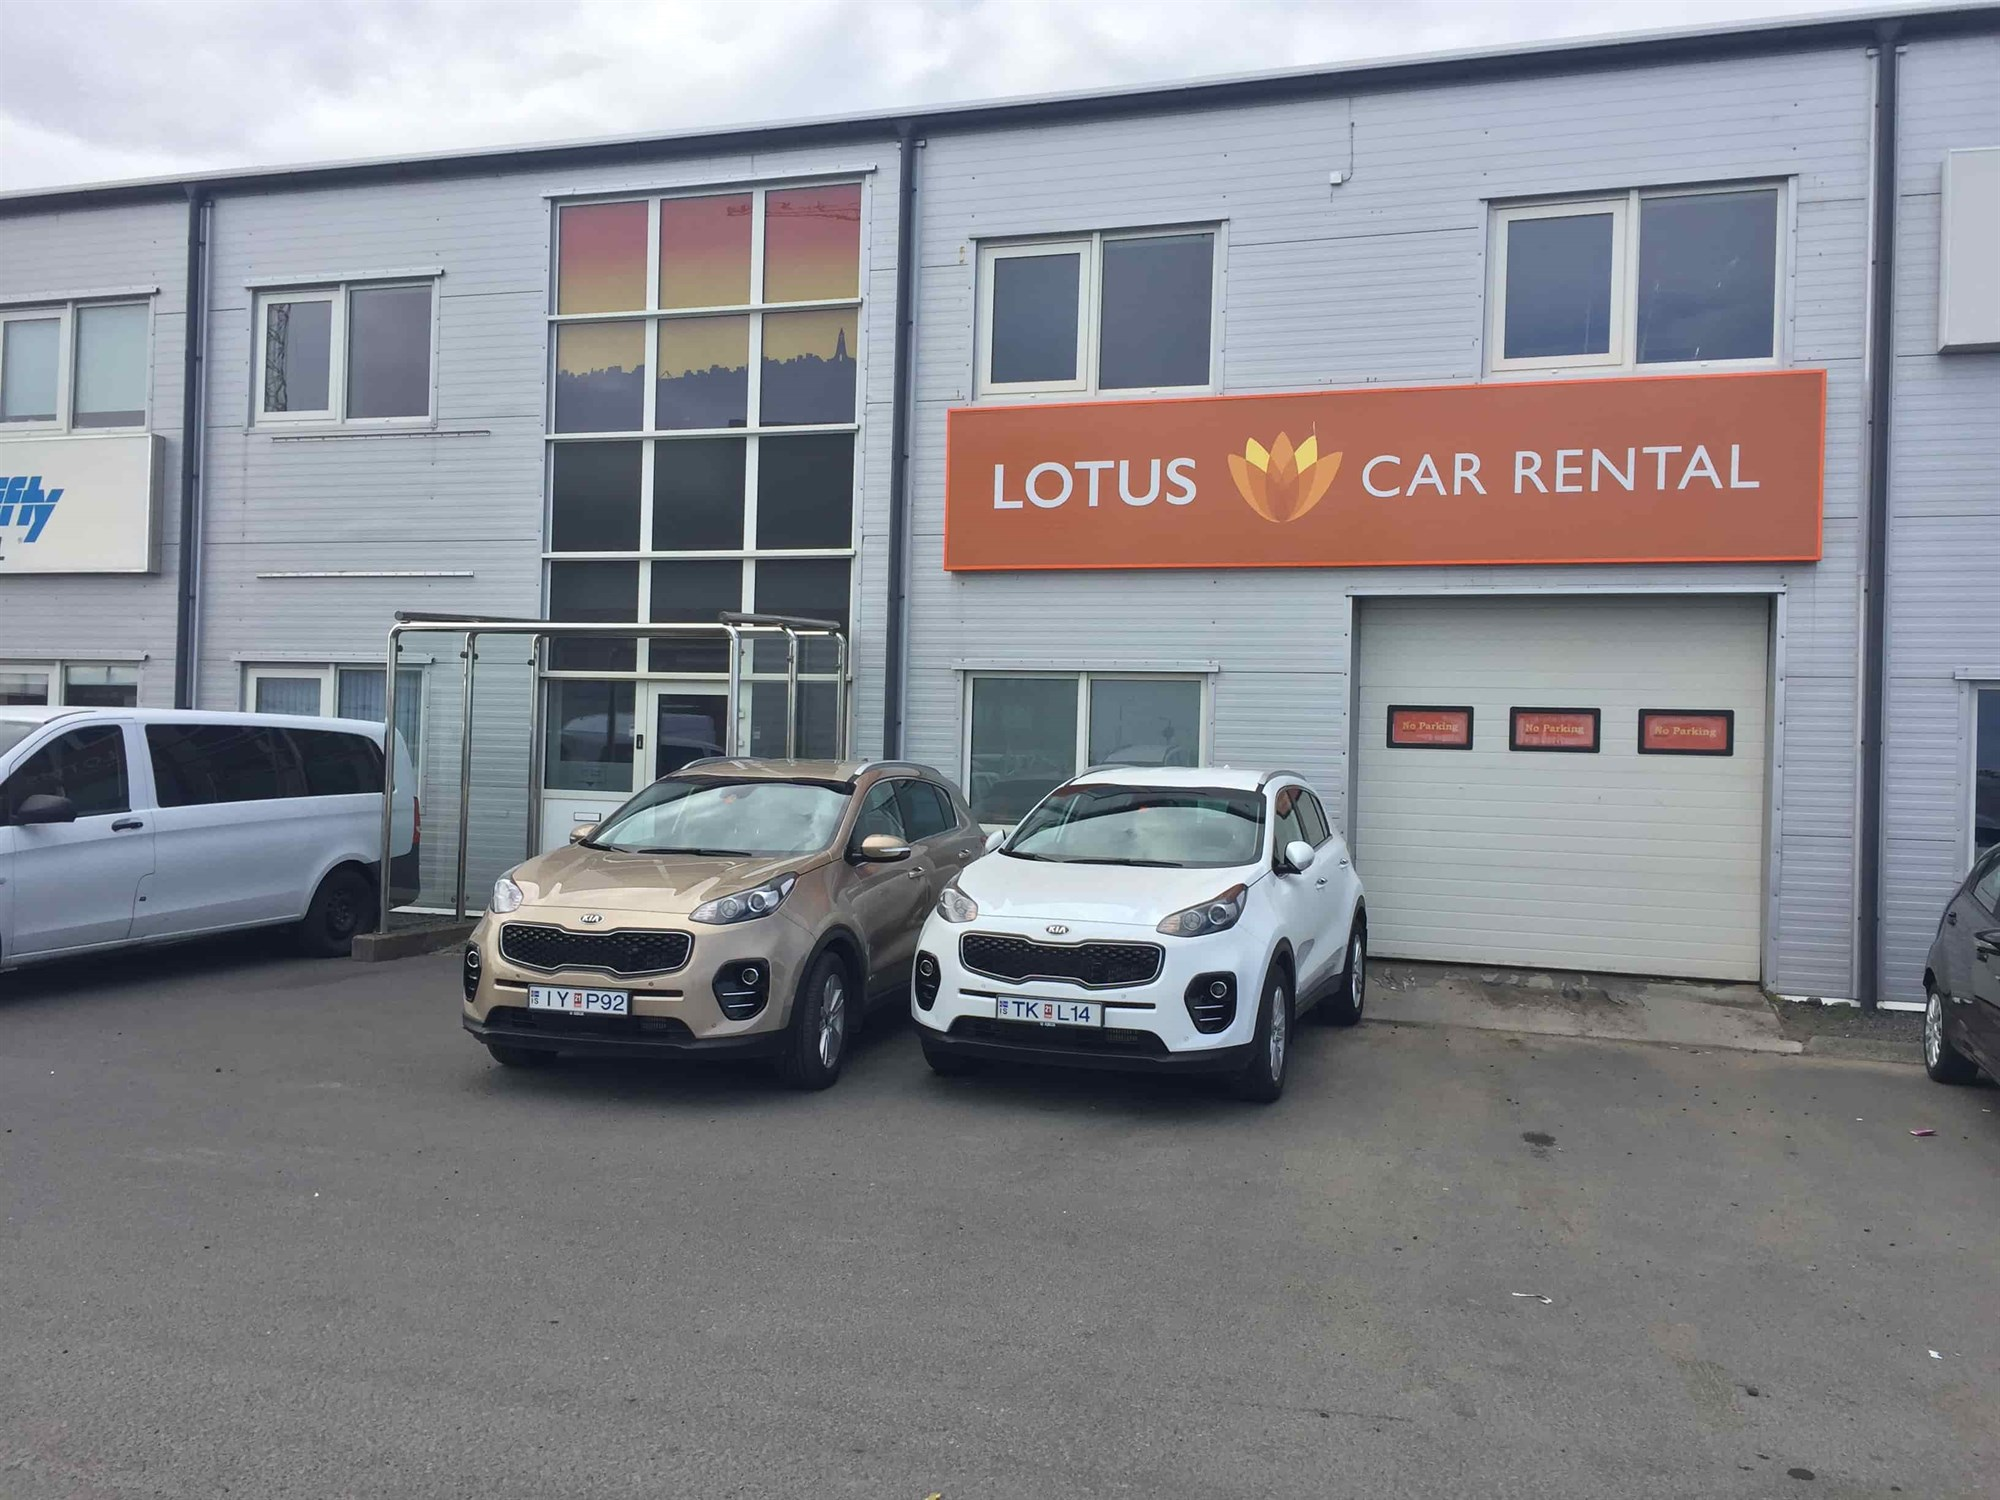 lotus car rental office with two kia sportage rental cars